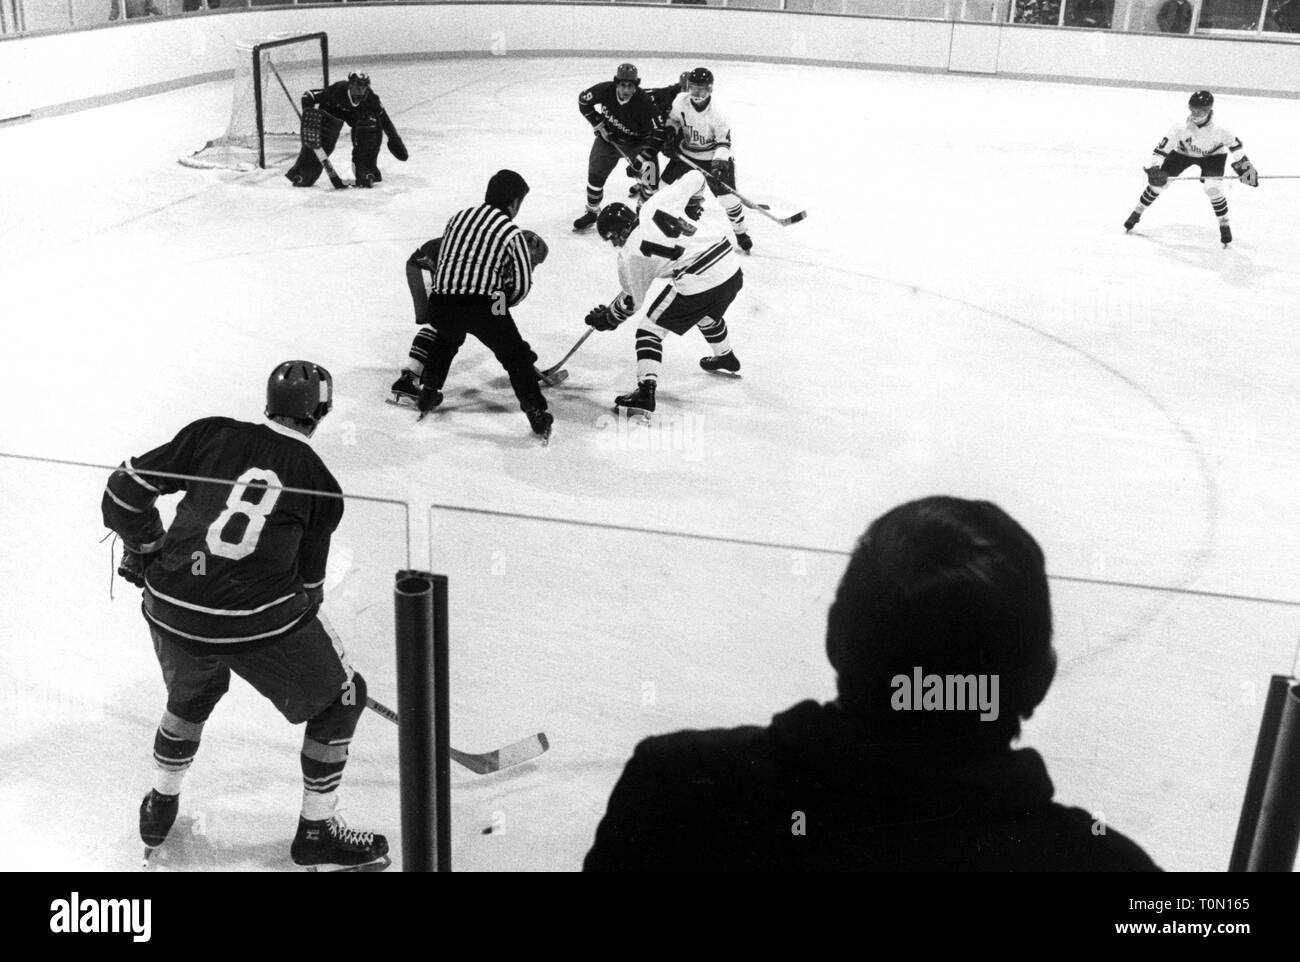 sports, winter sports, ice hockey, game, faceoff in front of the goal, North America, 1970s, Additional-Rights-Clearance-Info-Not-Available - Stock Image